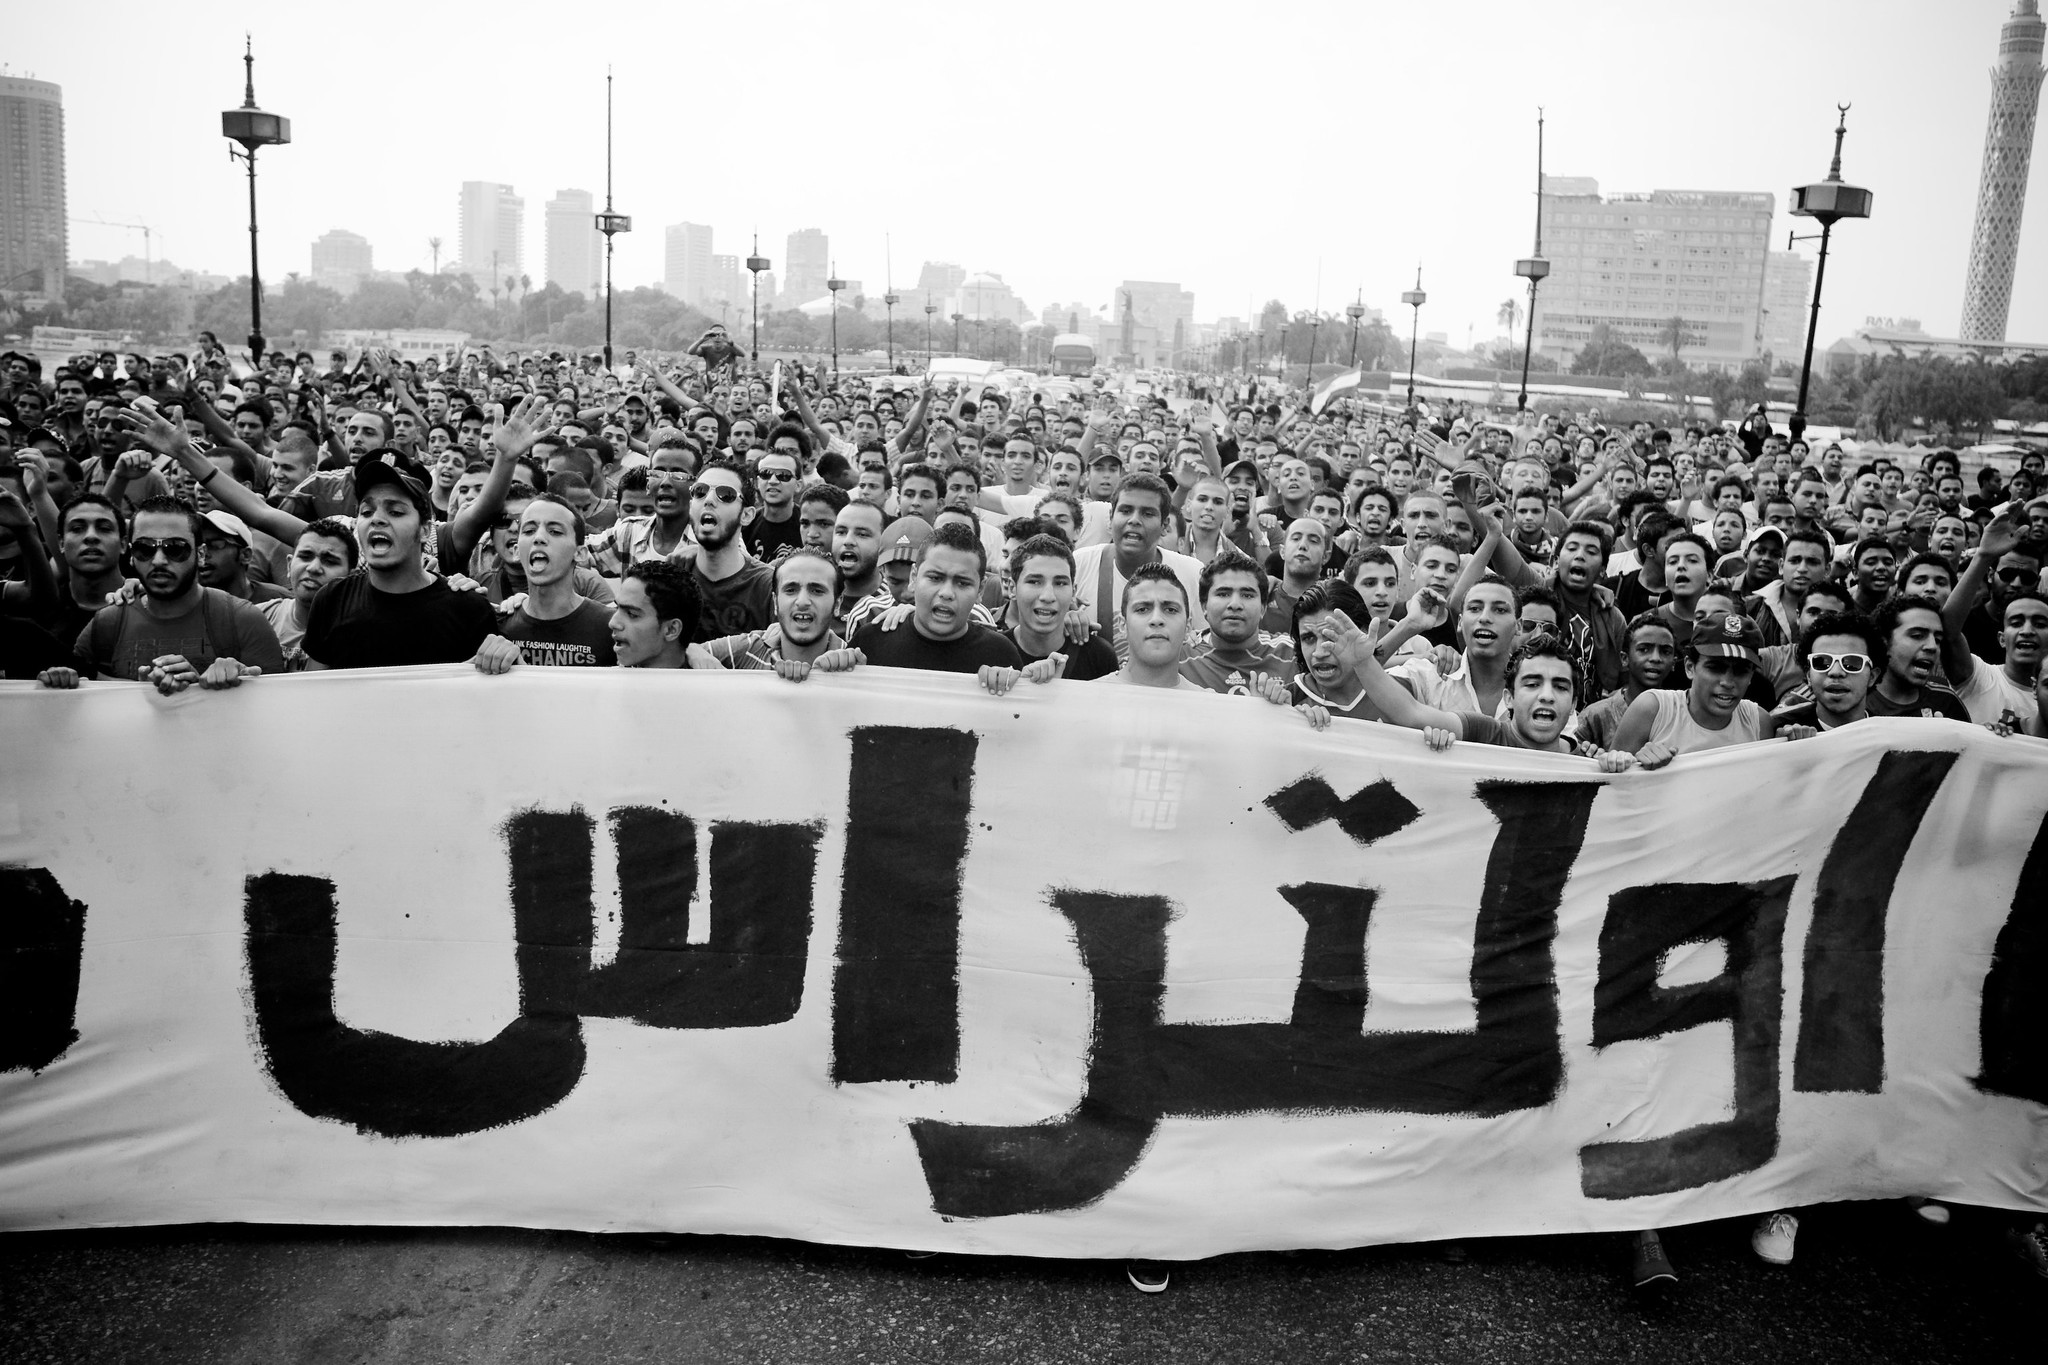 """Ultras Ahlawy march against police brutality"" by Hossam el-Hamalawy on Flickr (CC BY-SA 2.0)"